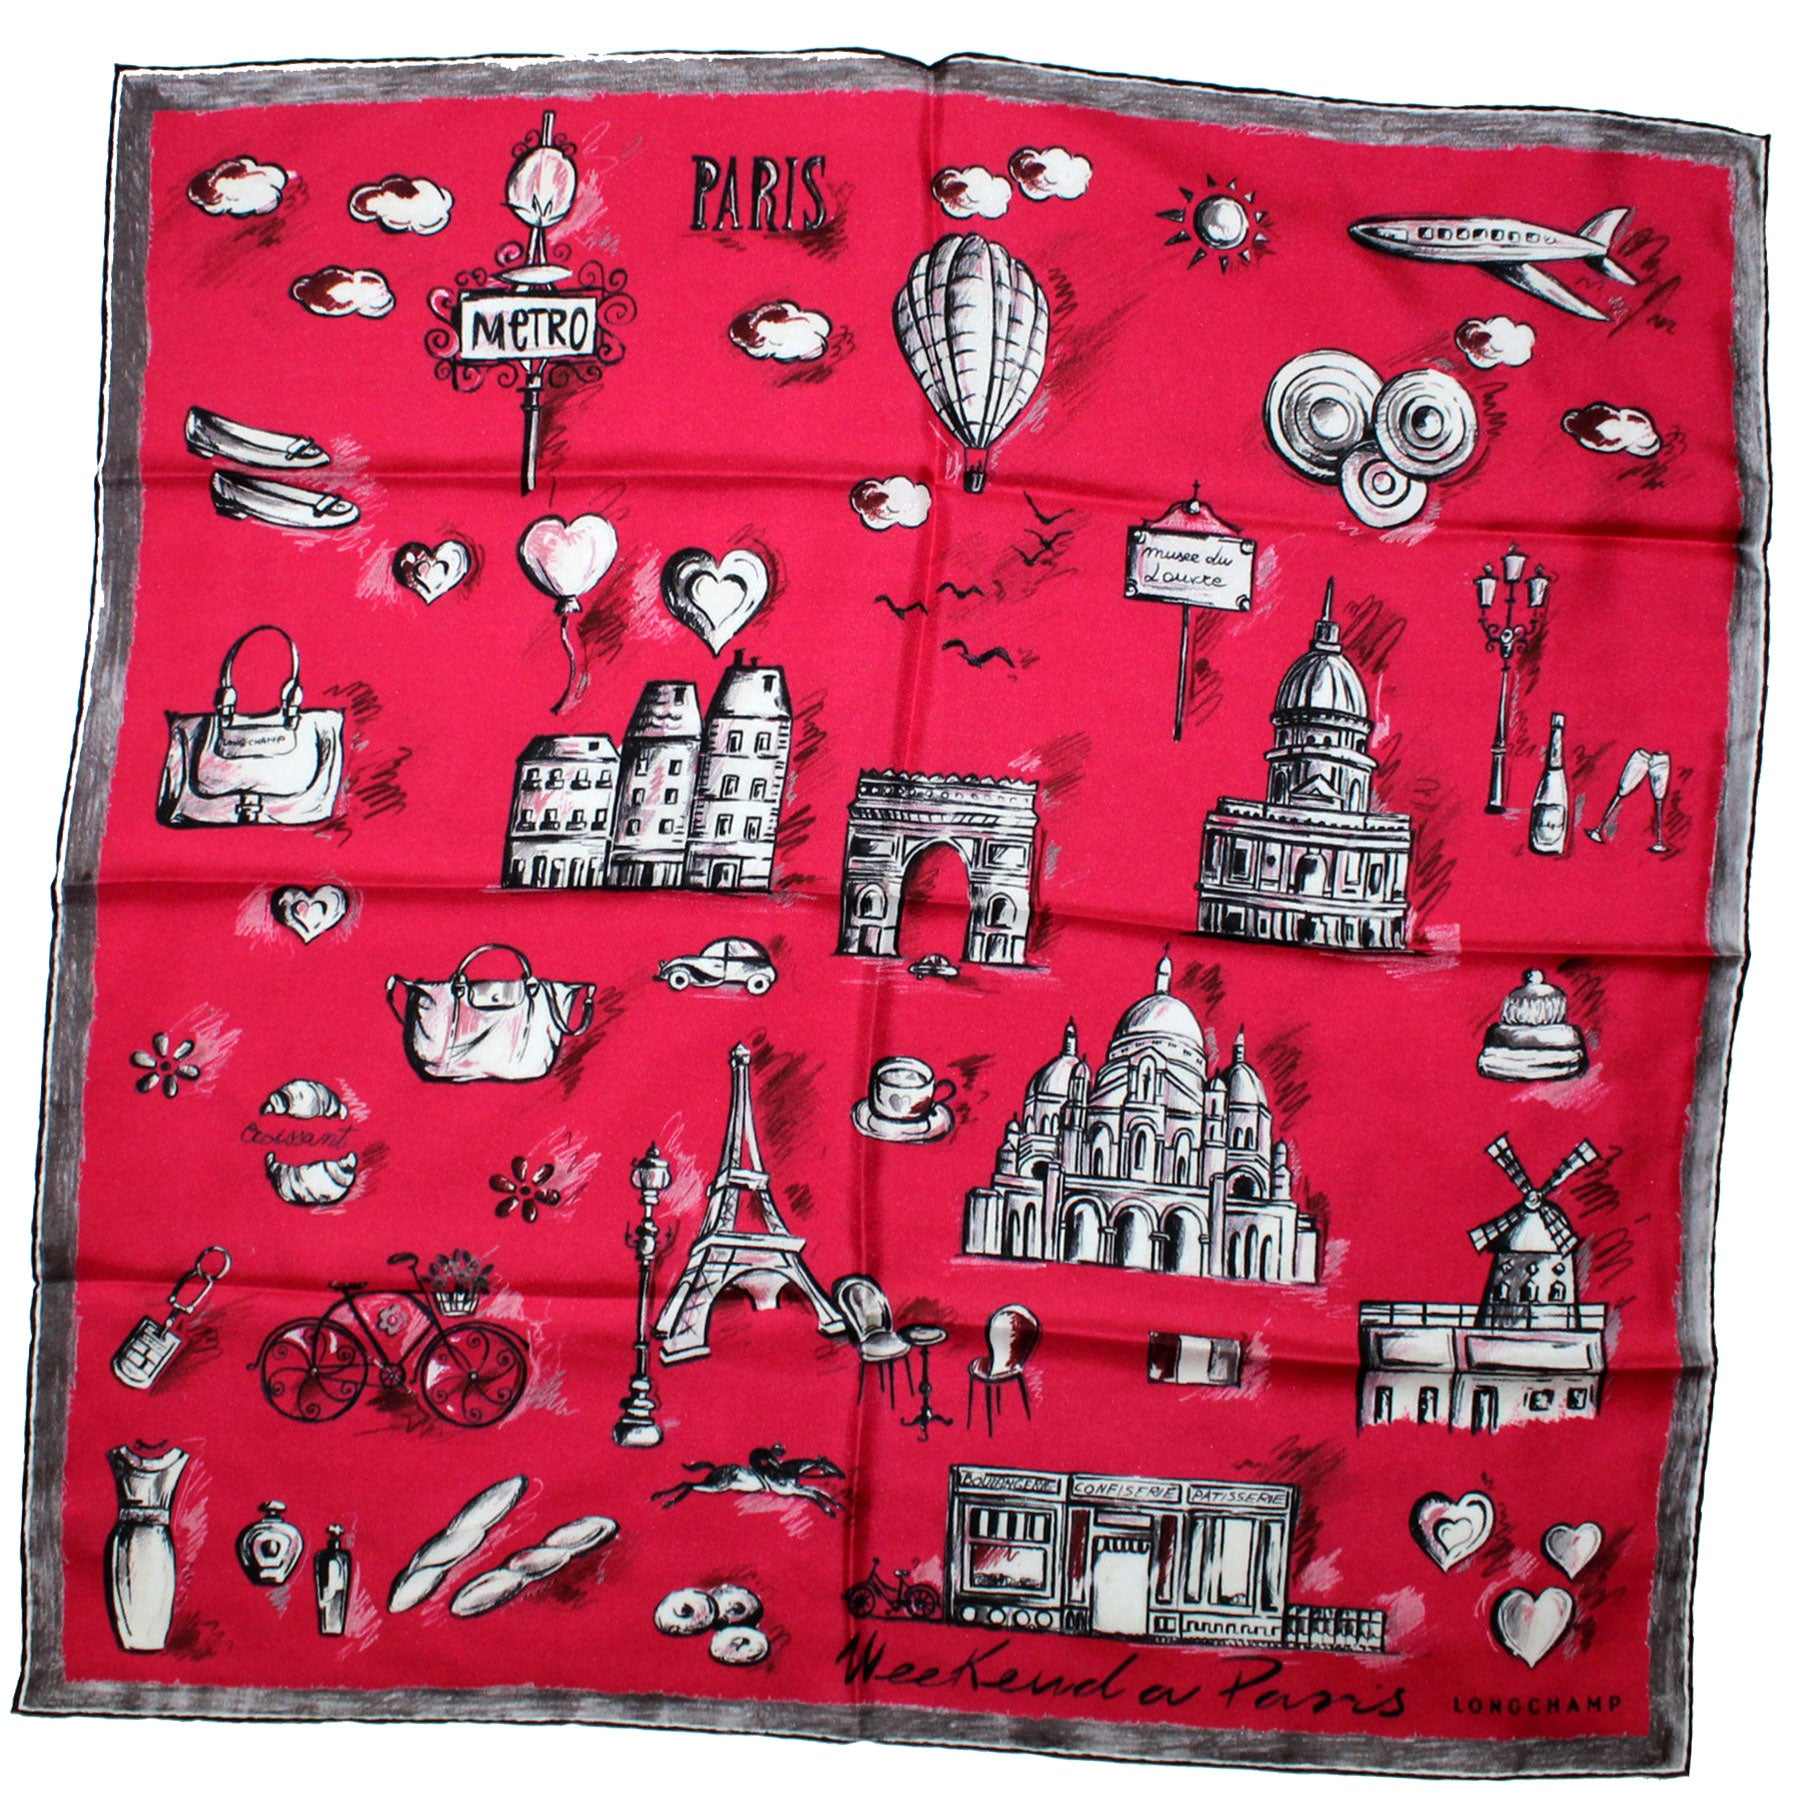 Longchamp Scarf Fuchsia Weekend a Paris Design - Medium Square Twill Silk Foulard SALE